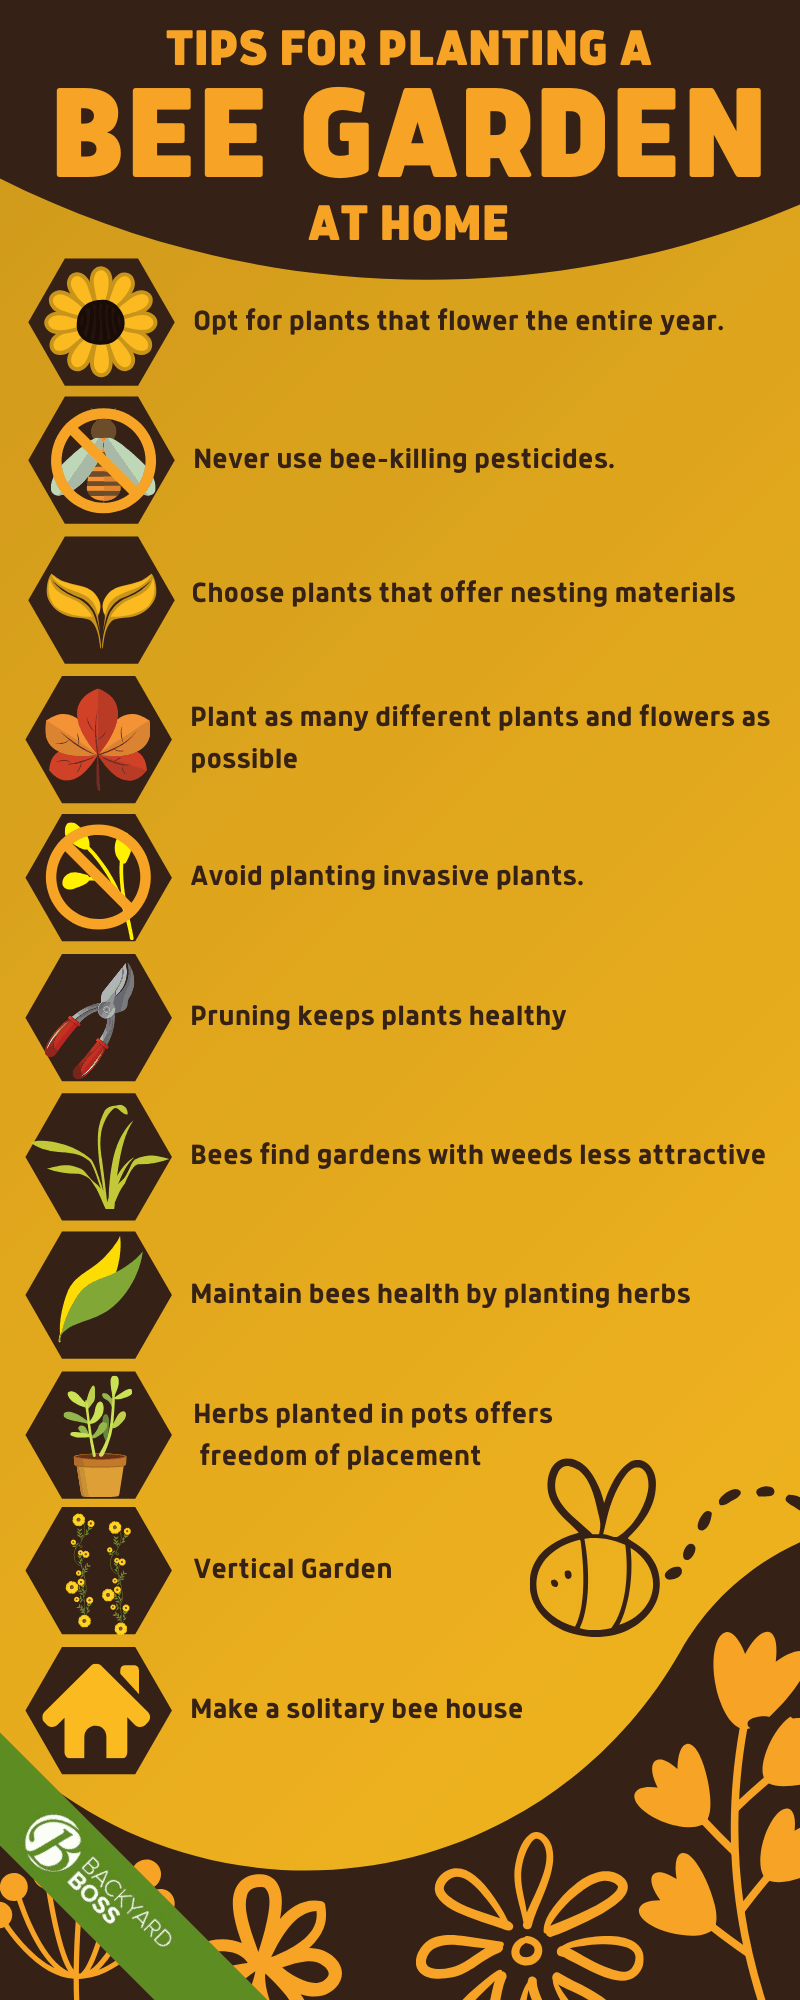 Tips for Planting a Bee Garden at Home - Infographic